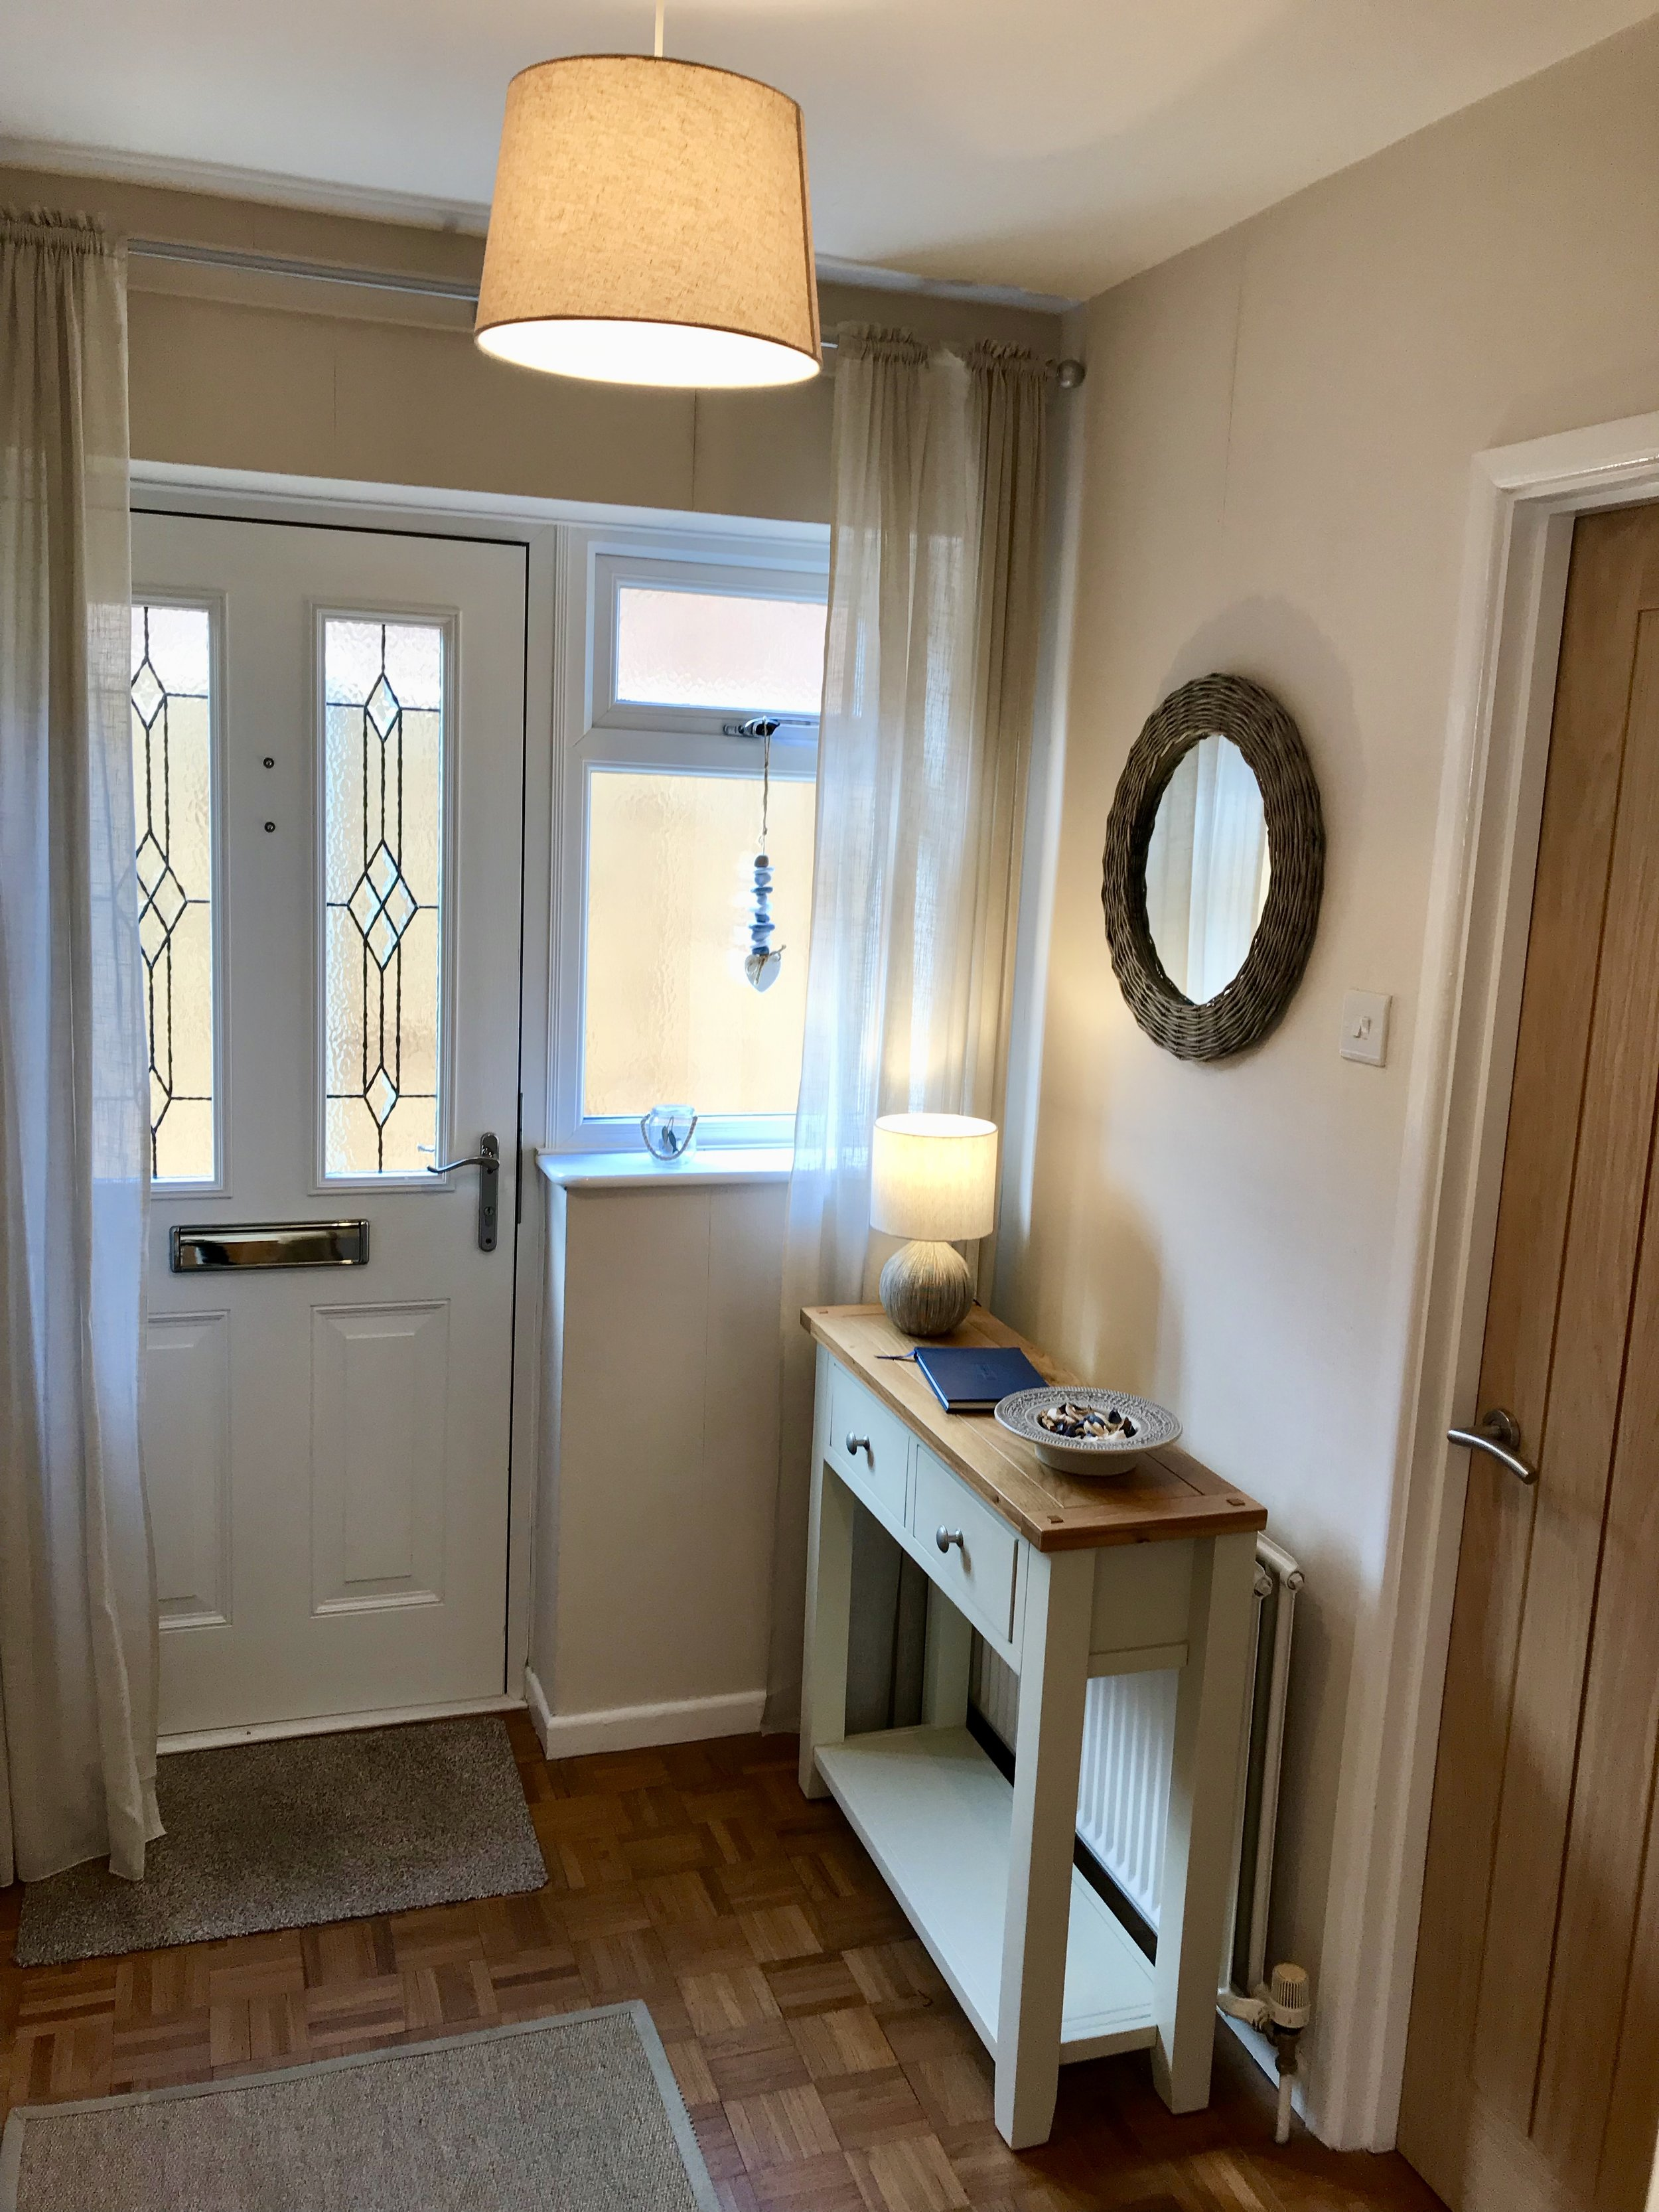 Entrance Hall - Access to the bungalow is via the entrance hall to the side of the property.The hall cupboard provides hanging space for coats and contains cleaning equipment, an iron and an ironing board.The bungalow has guest controlled central heating and free Wi-Fi.